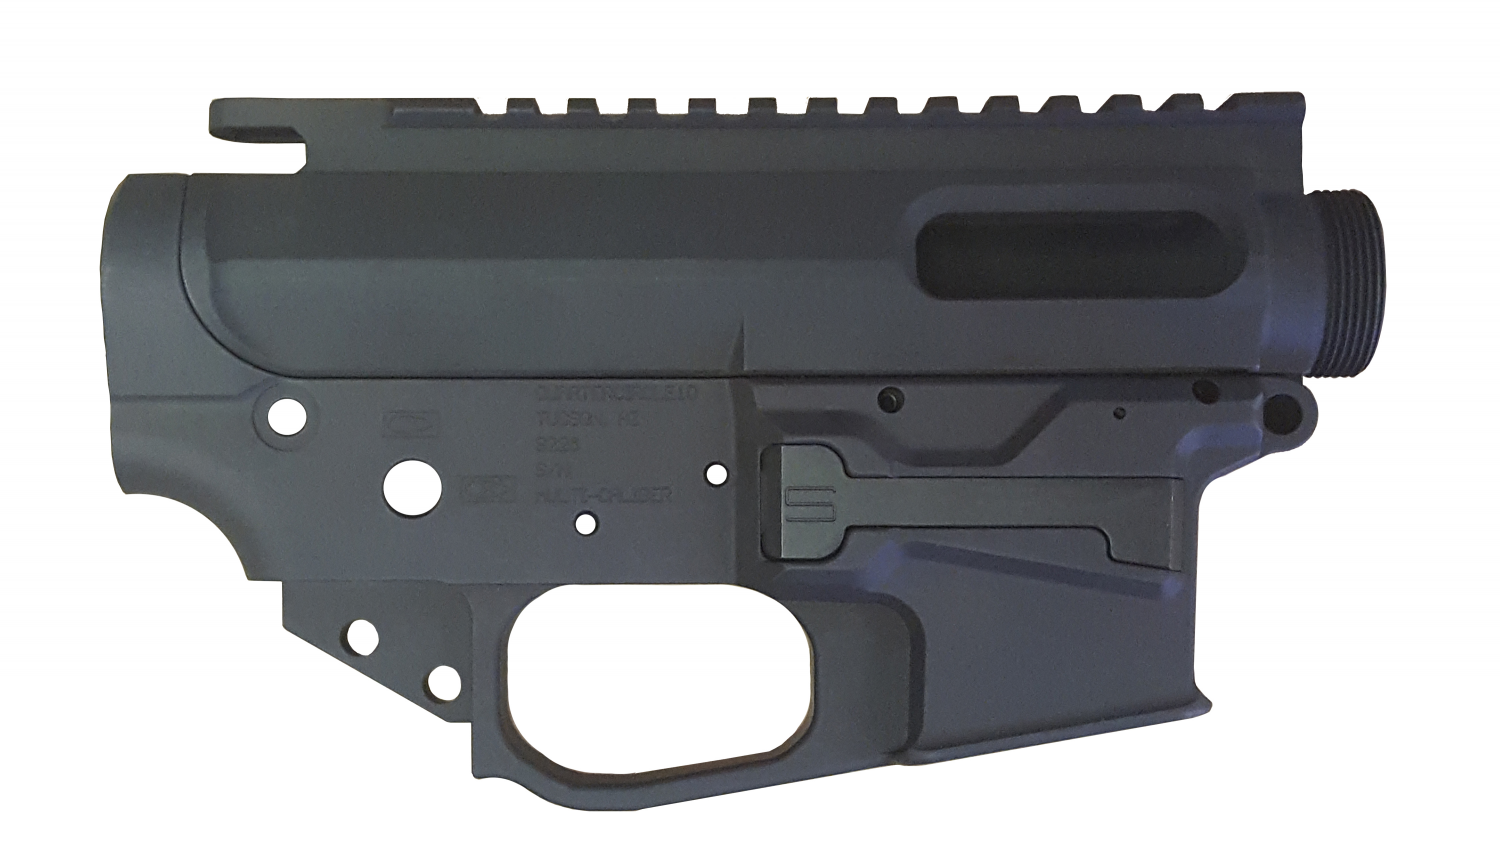 The lowers are available in either stripped or as a receiver set.